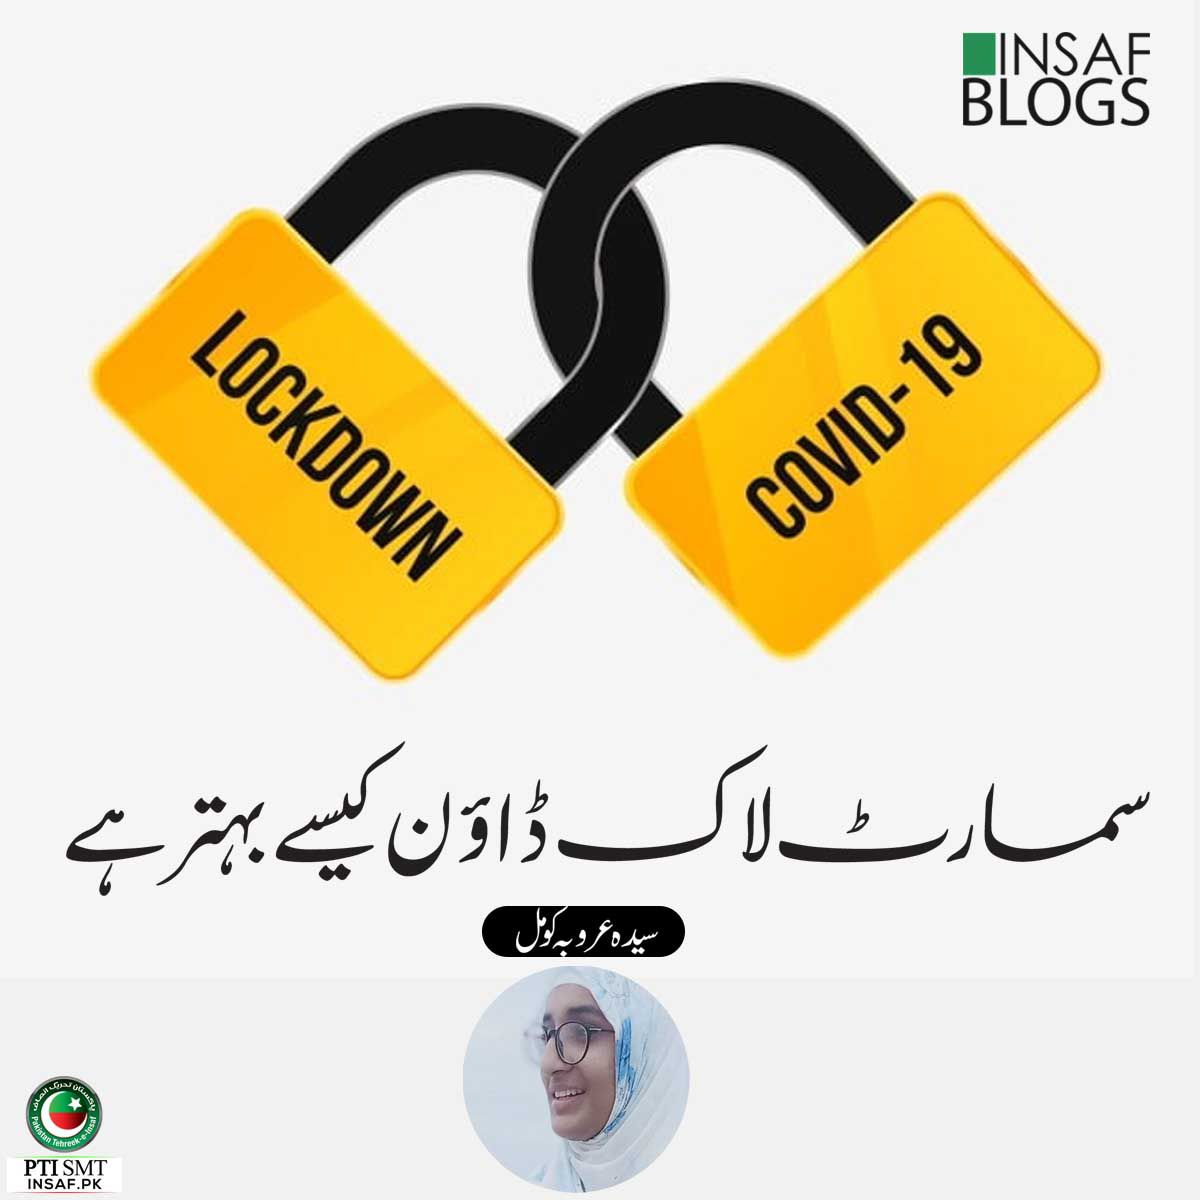 Smart lockdown Insaf Blog